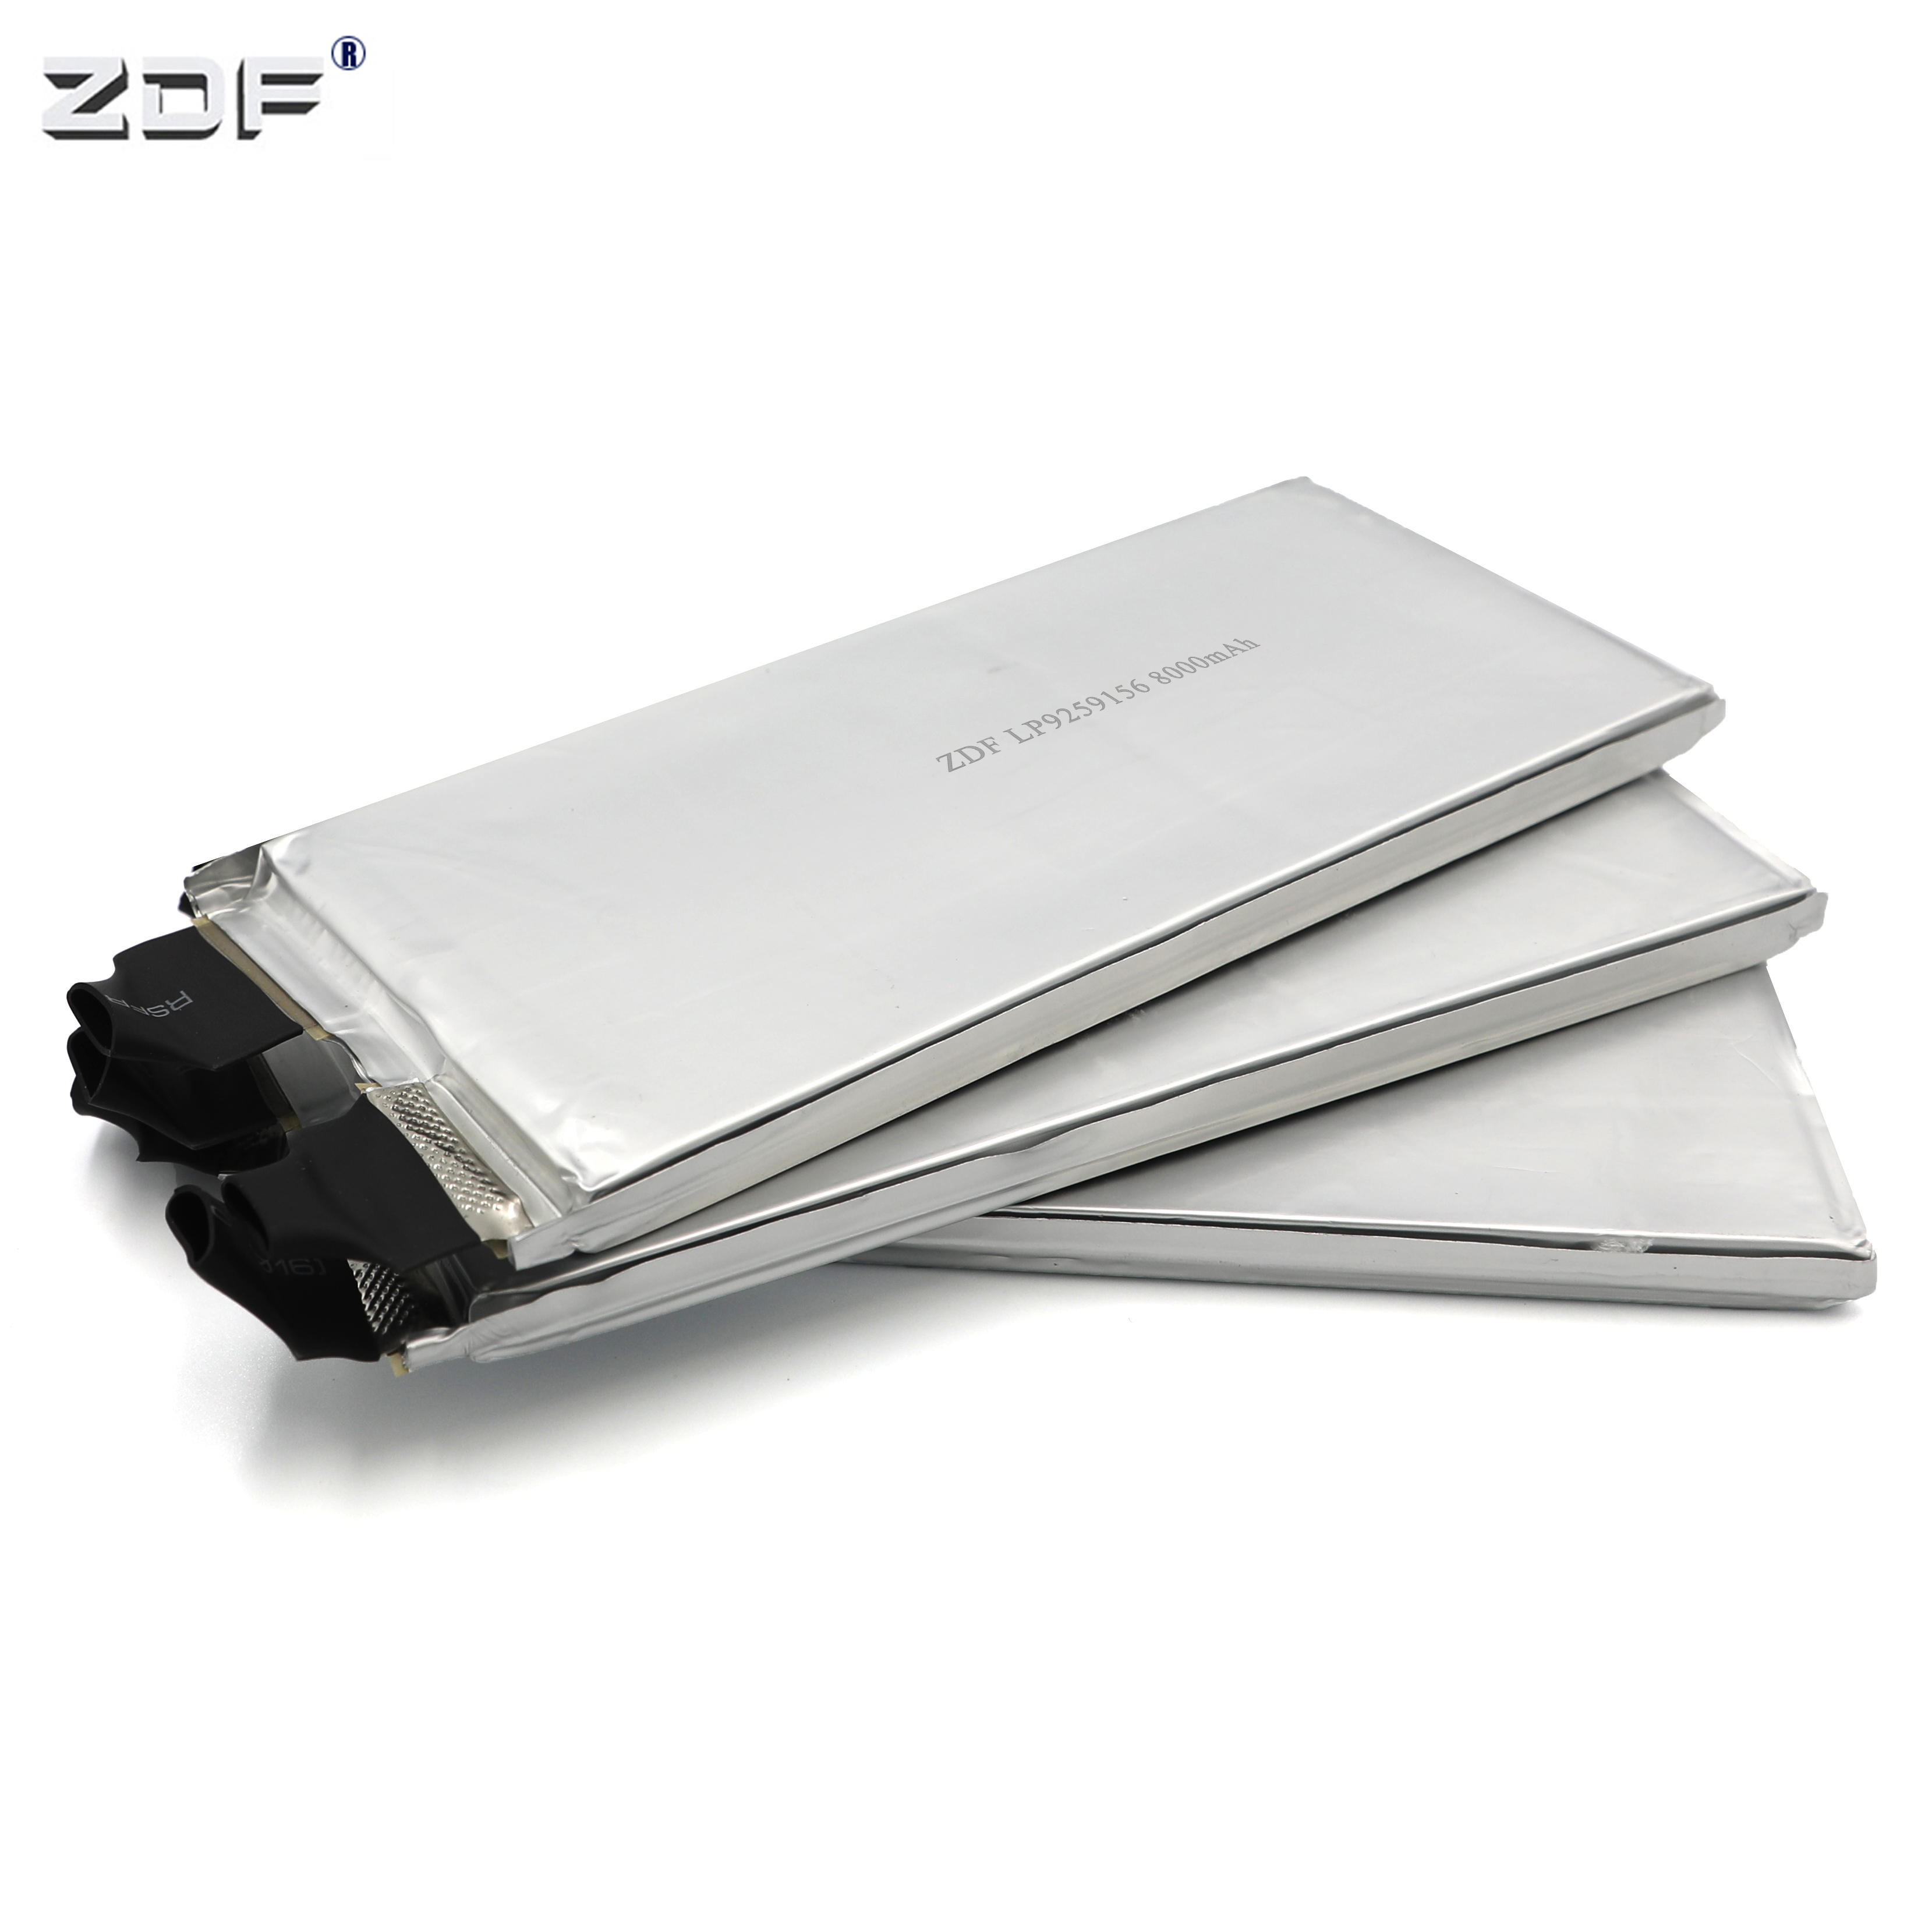 ZDF 3.7V 5000mAh 6000mAh 8000mah 10000mAh 12000mAh 16000mAh 25C 35C 50C lipo battery cell for diy RC UAV Drone 2S 3S 4S 5S 6S image